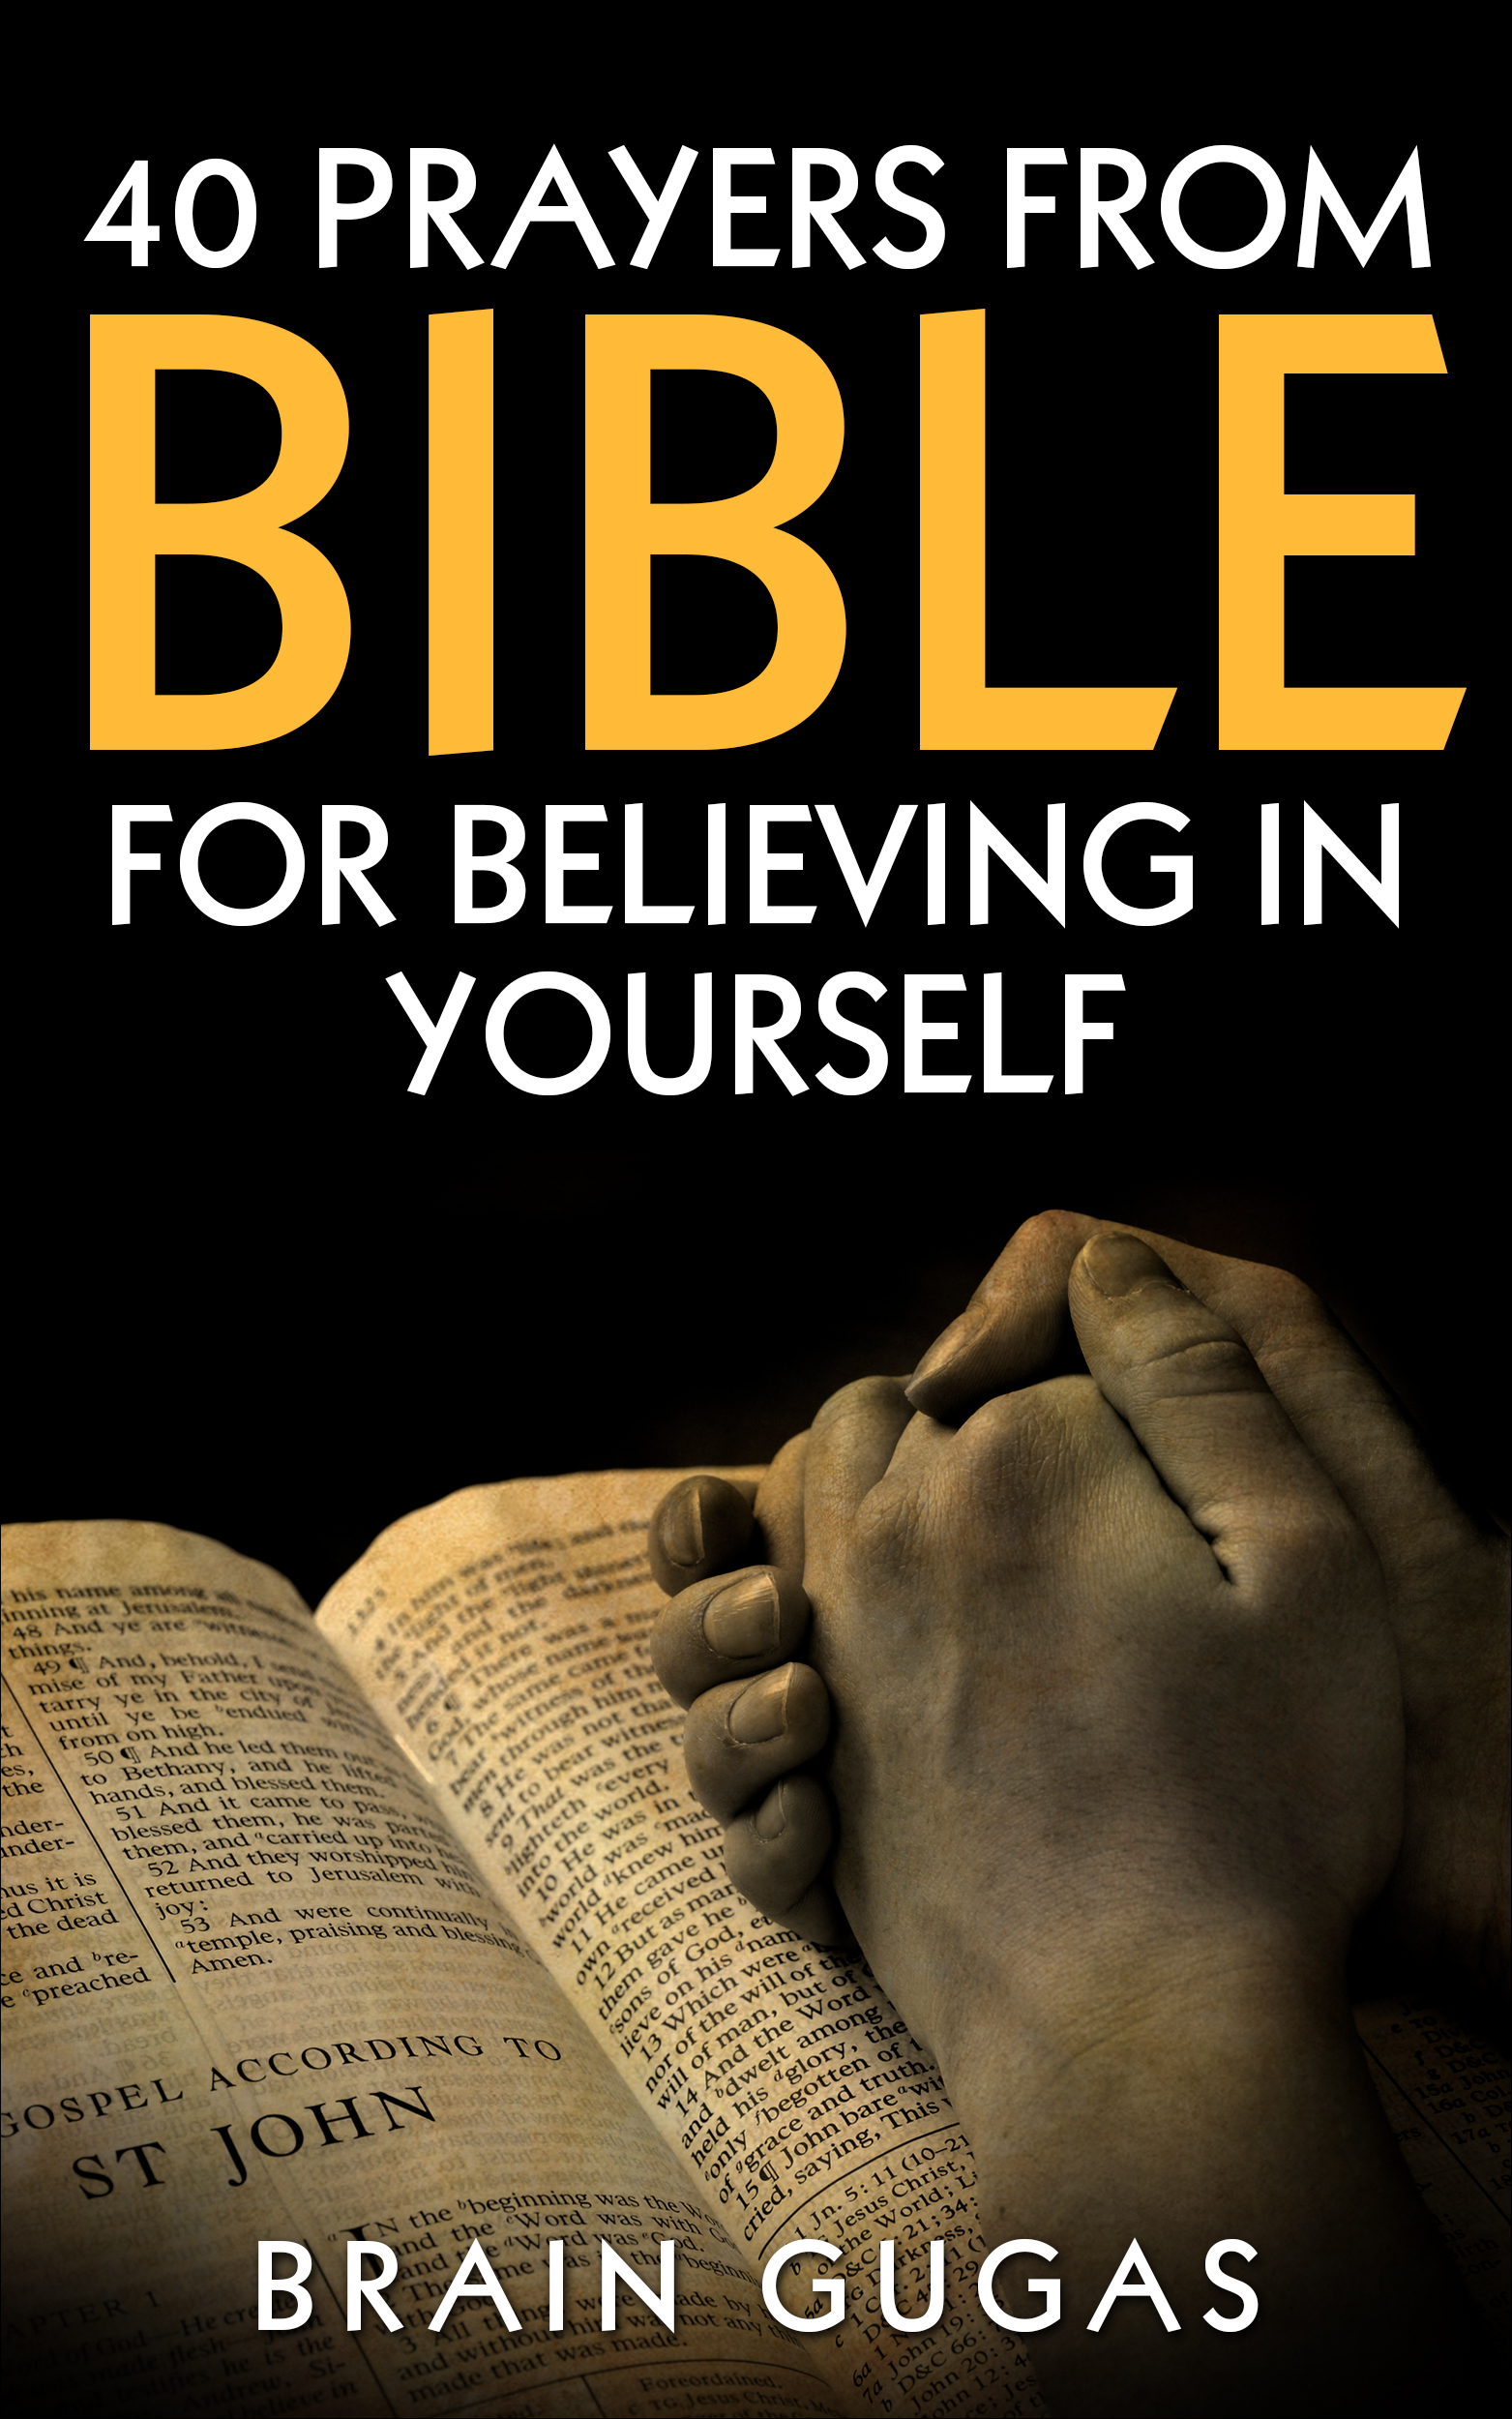 40 prayers from bible: for believing in yourself